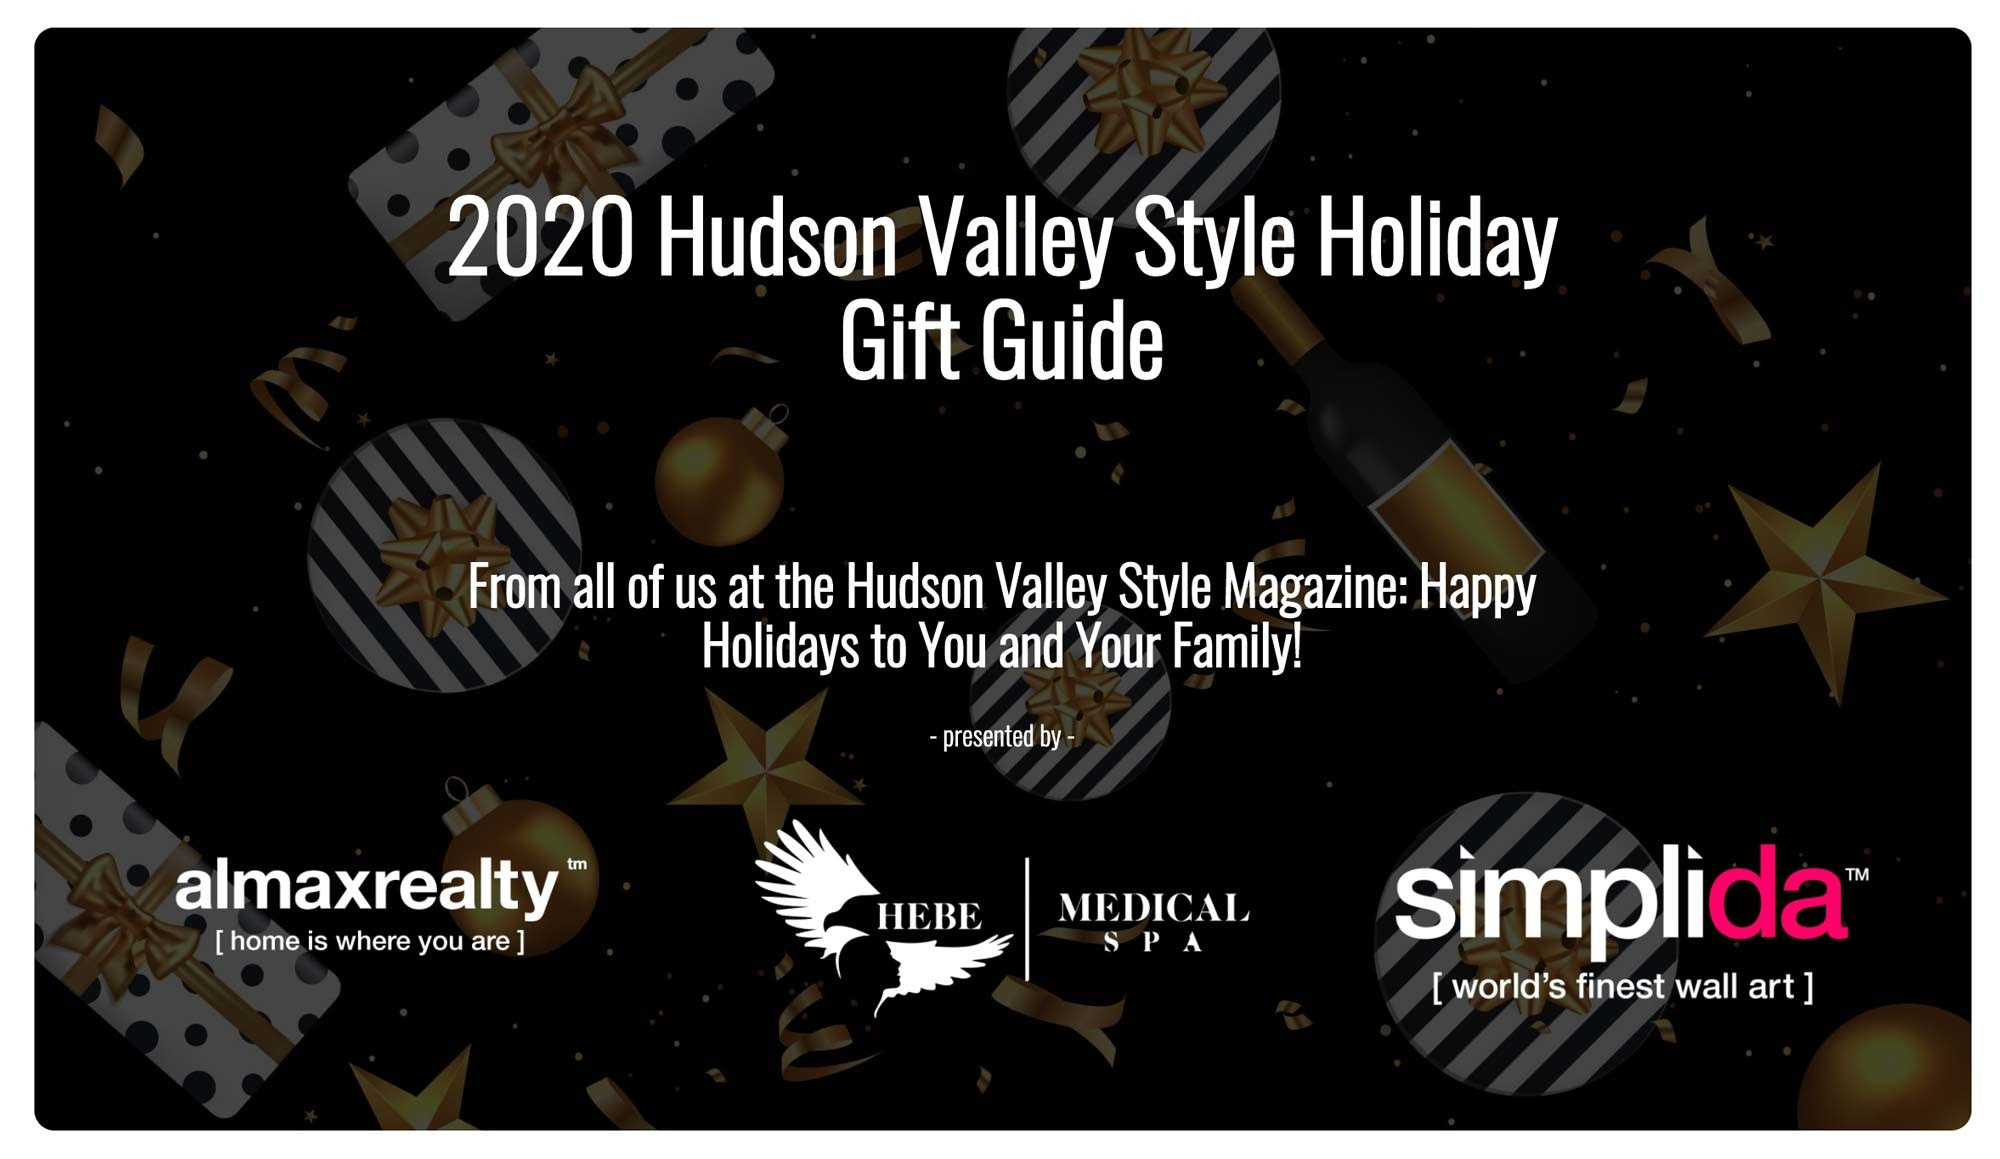 2020 Hudson Valley Style Holiday Gift Guide